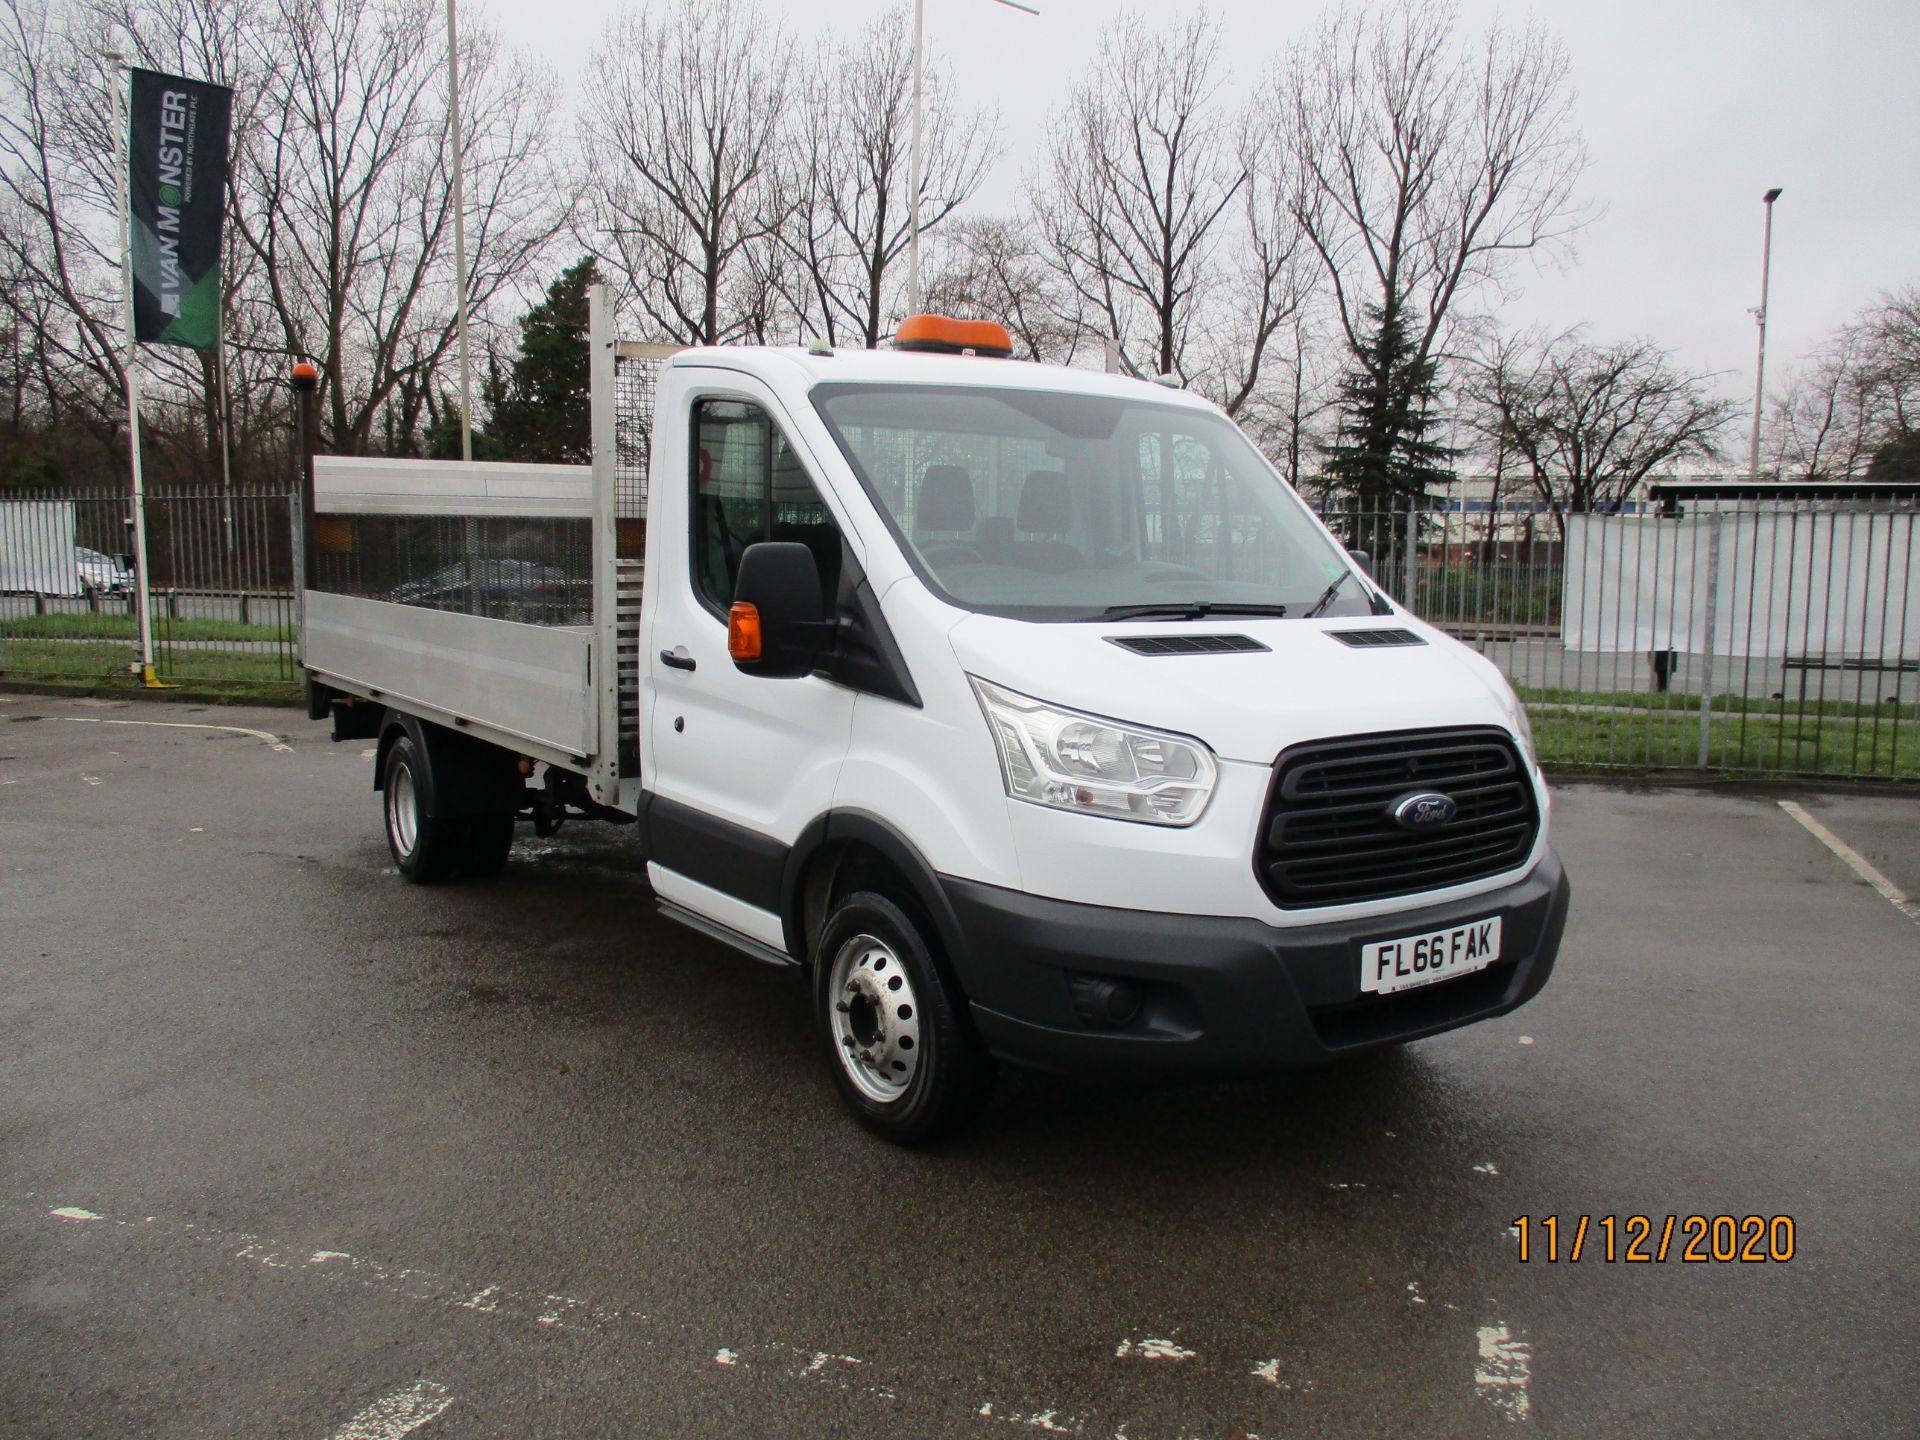 2016 Ford Transit 2.2 Tdci 125Ps Chassis Cab (FL66FAK)